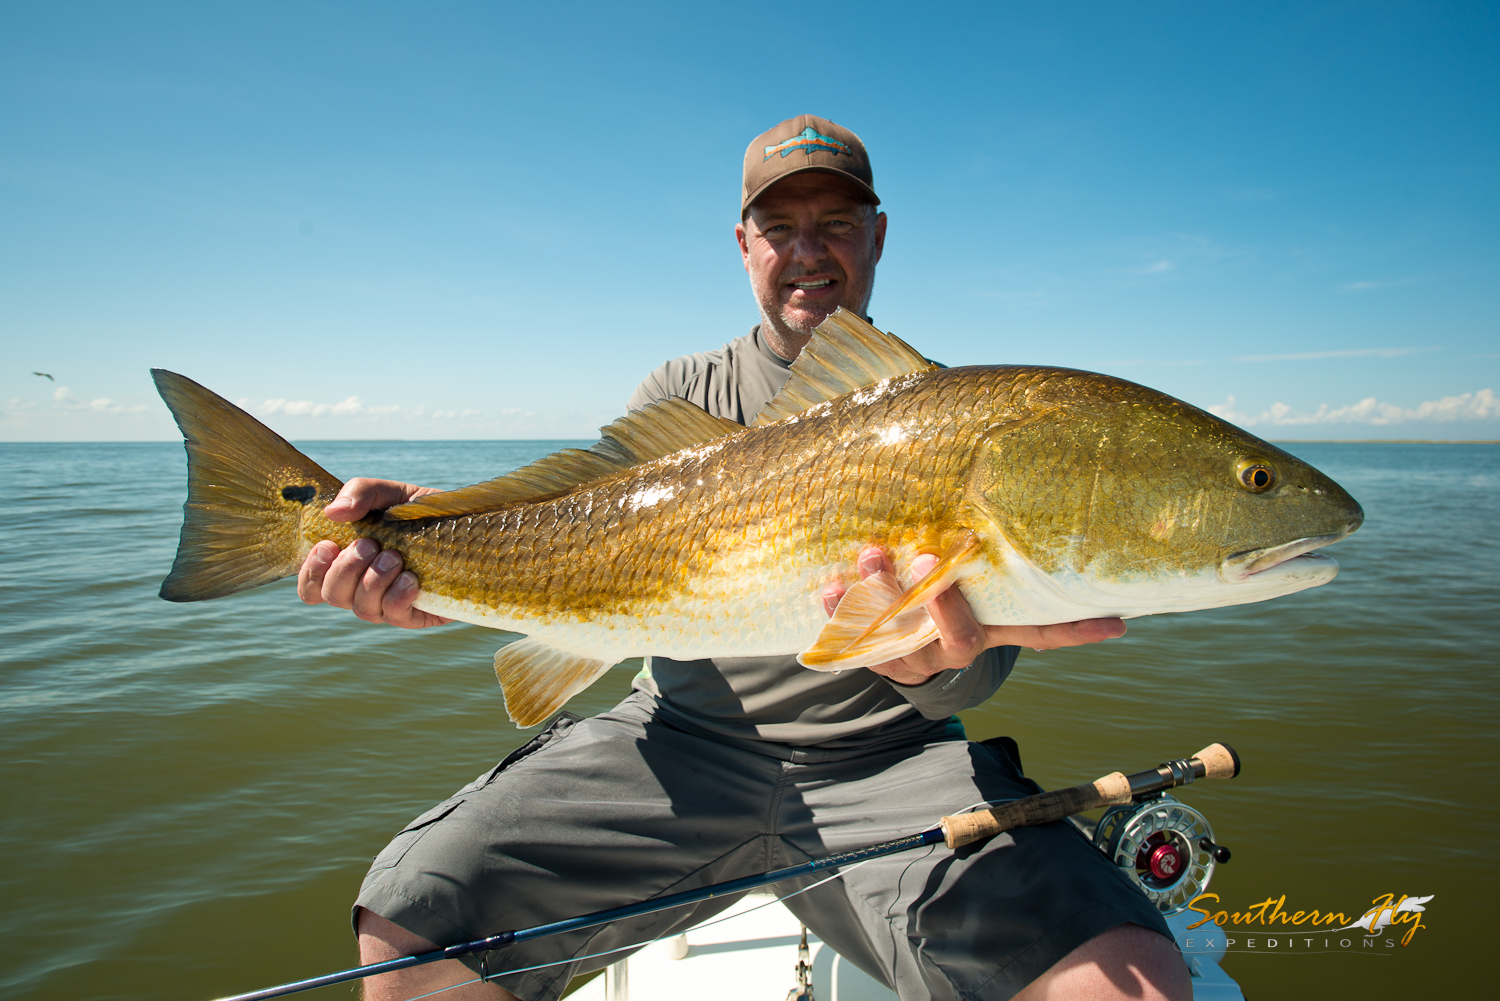 new orleans fishing charter southern fly expeditions redfish guide